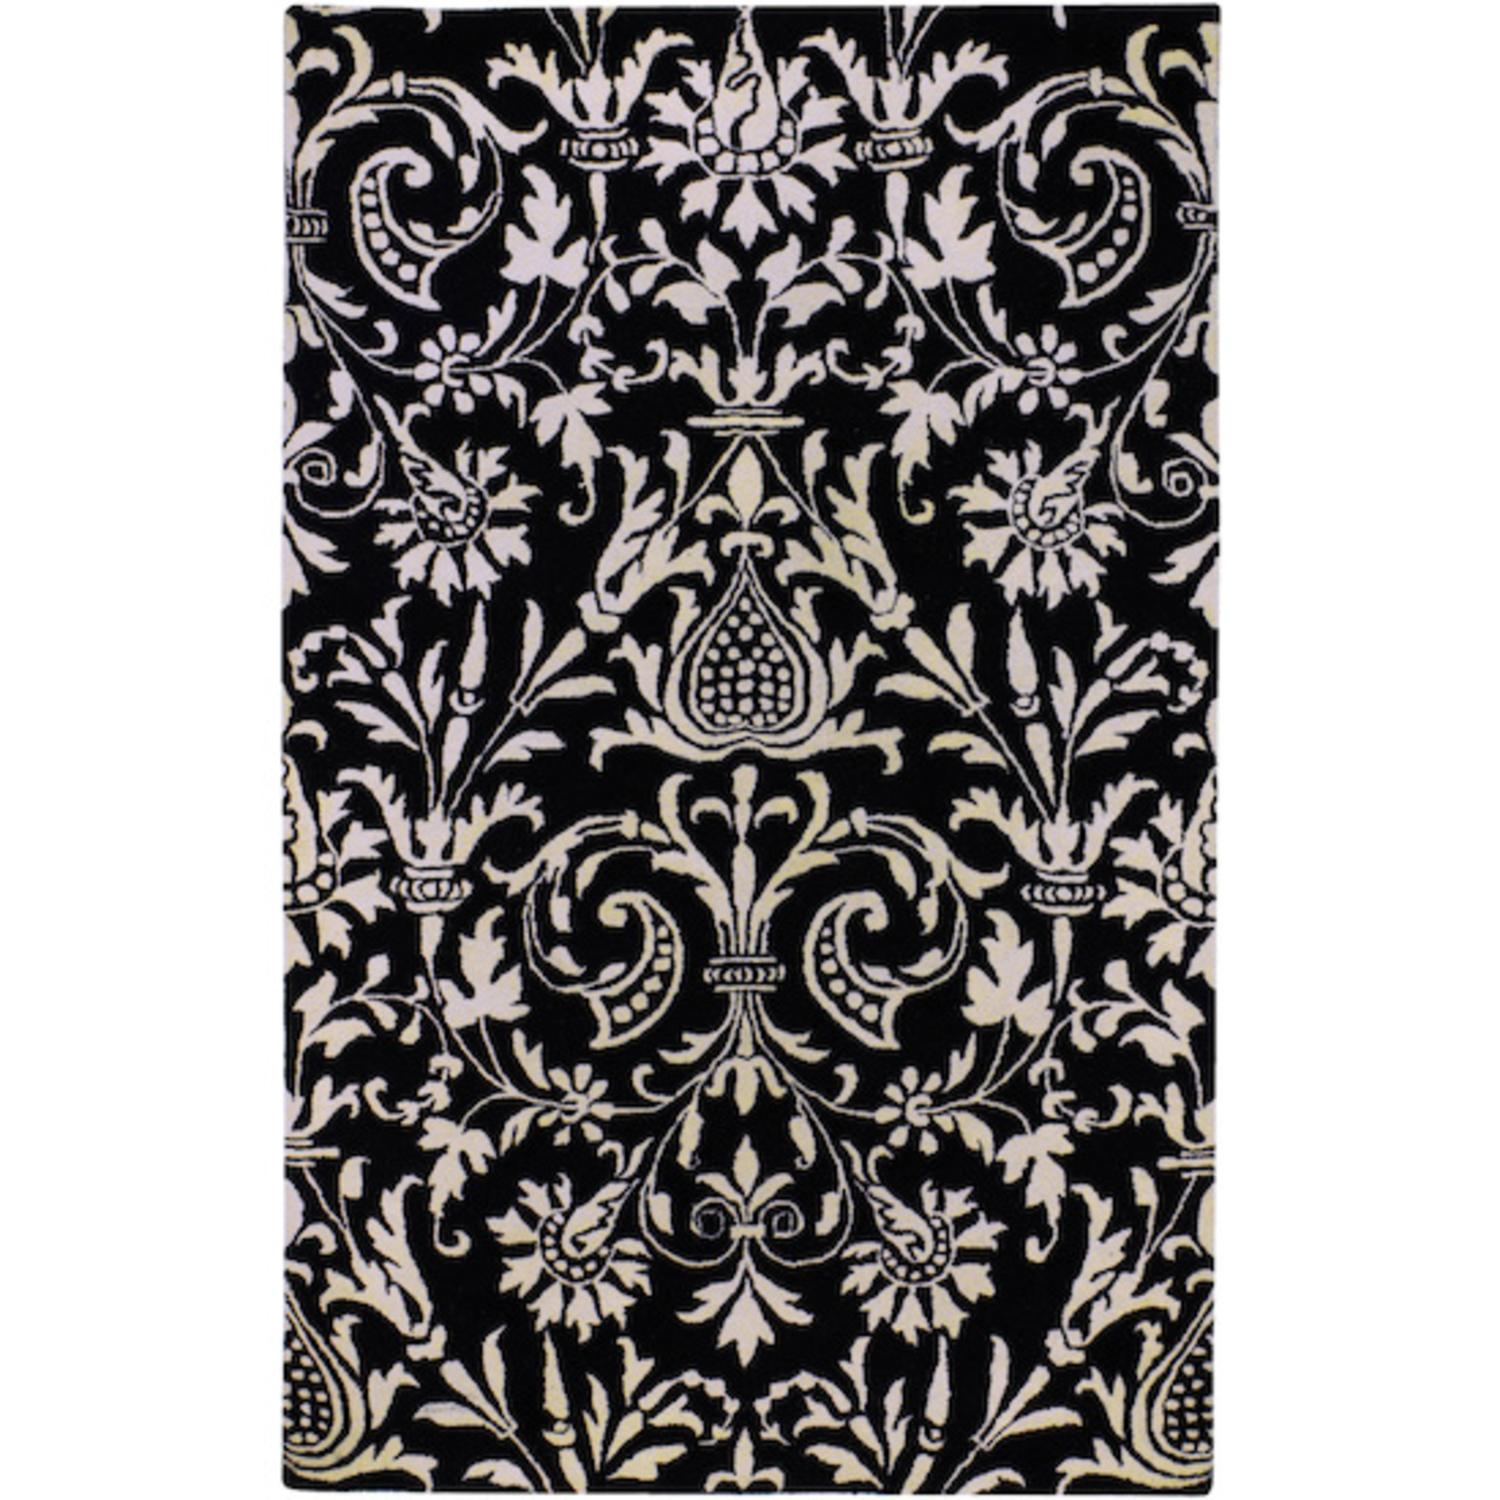 2' x 3' Les Cryne Jardin Winter White and Jet Black Wool Area Throw Rug